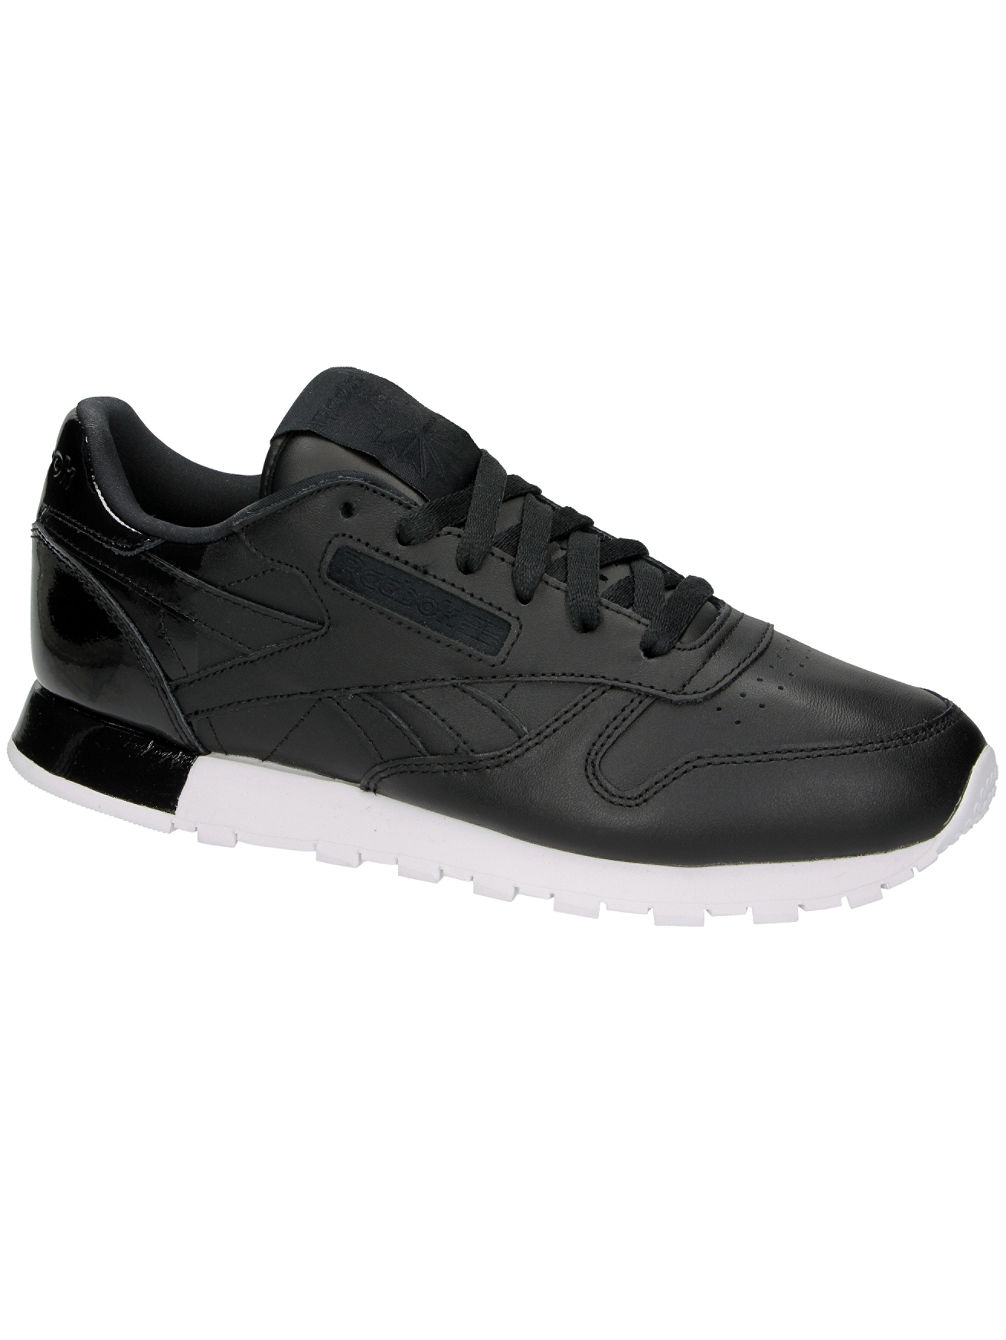 Classic Leather Matte Shine Sneakers